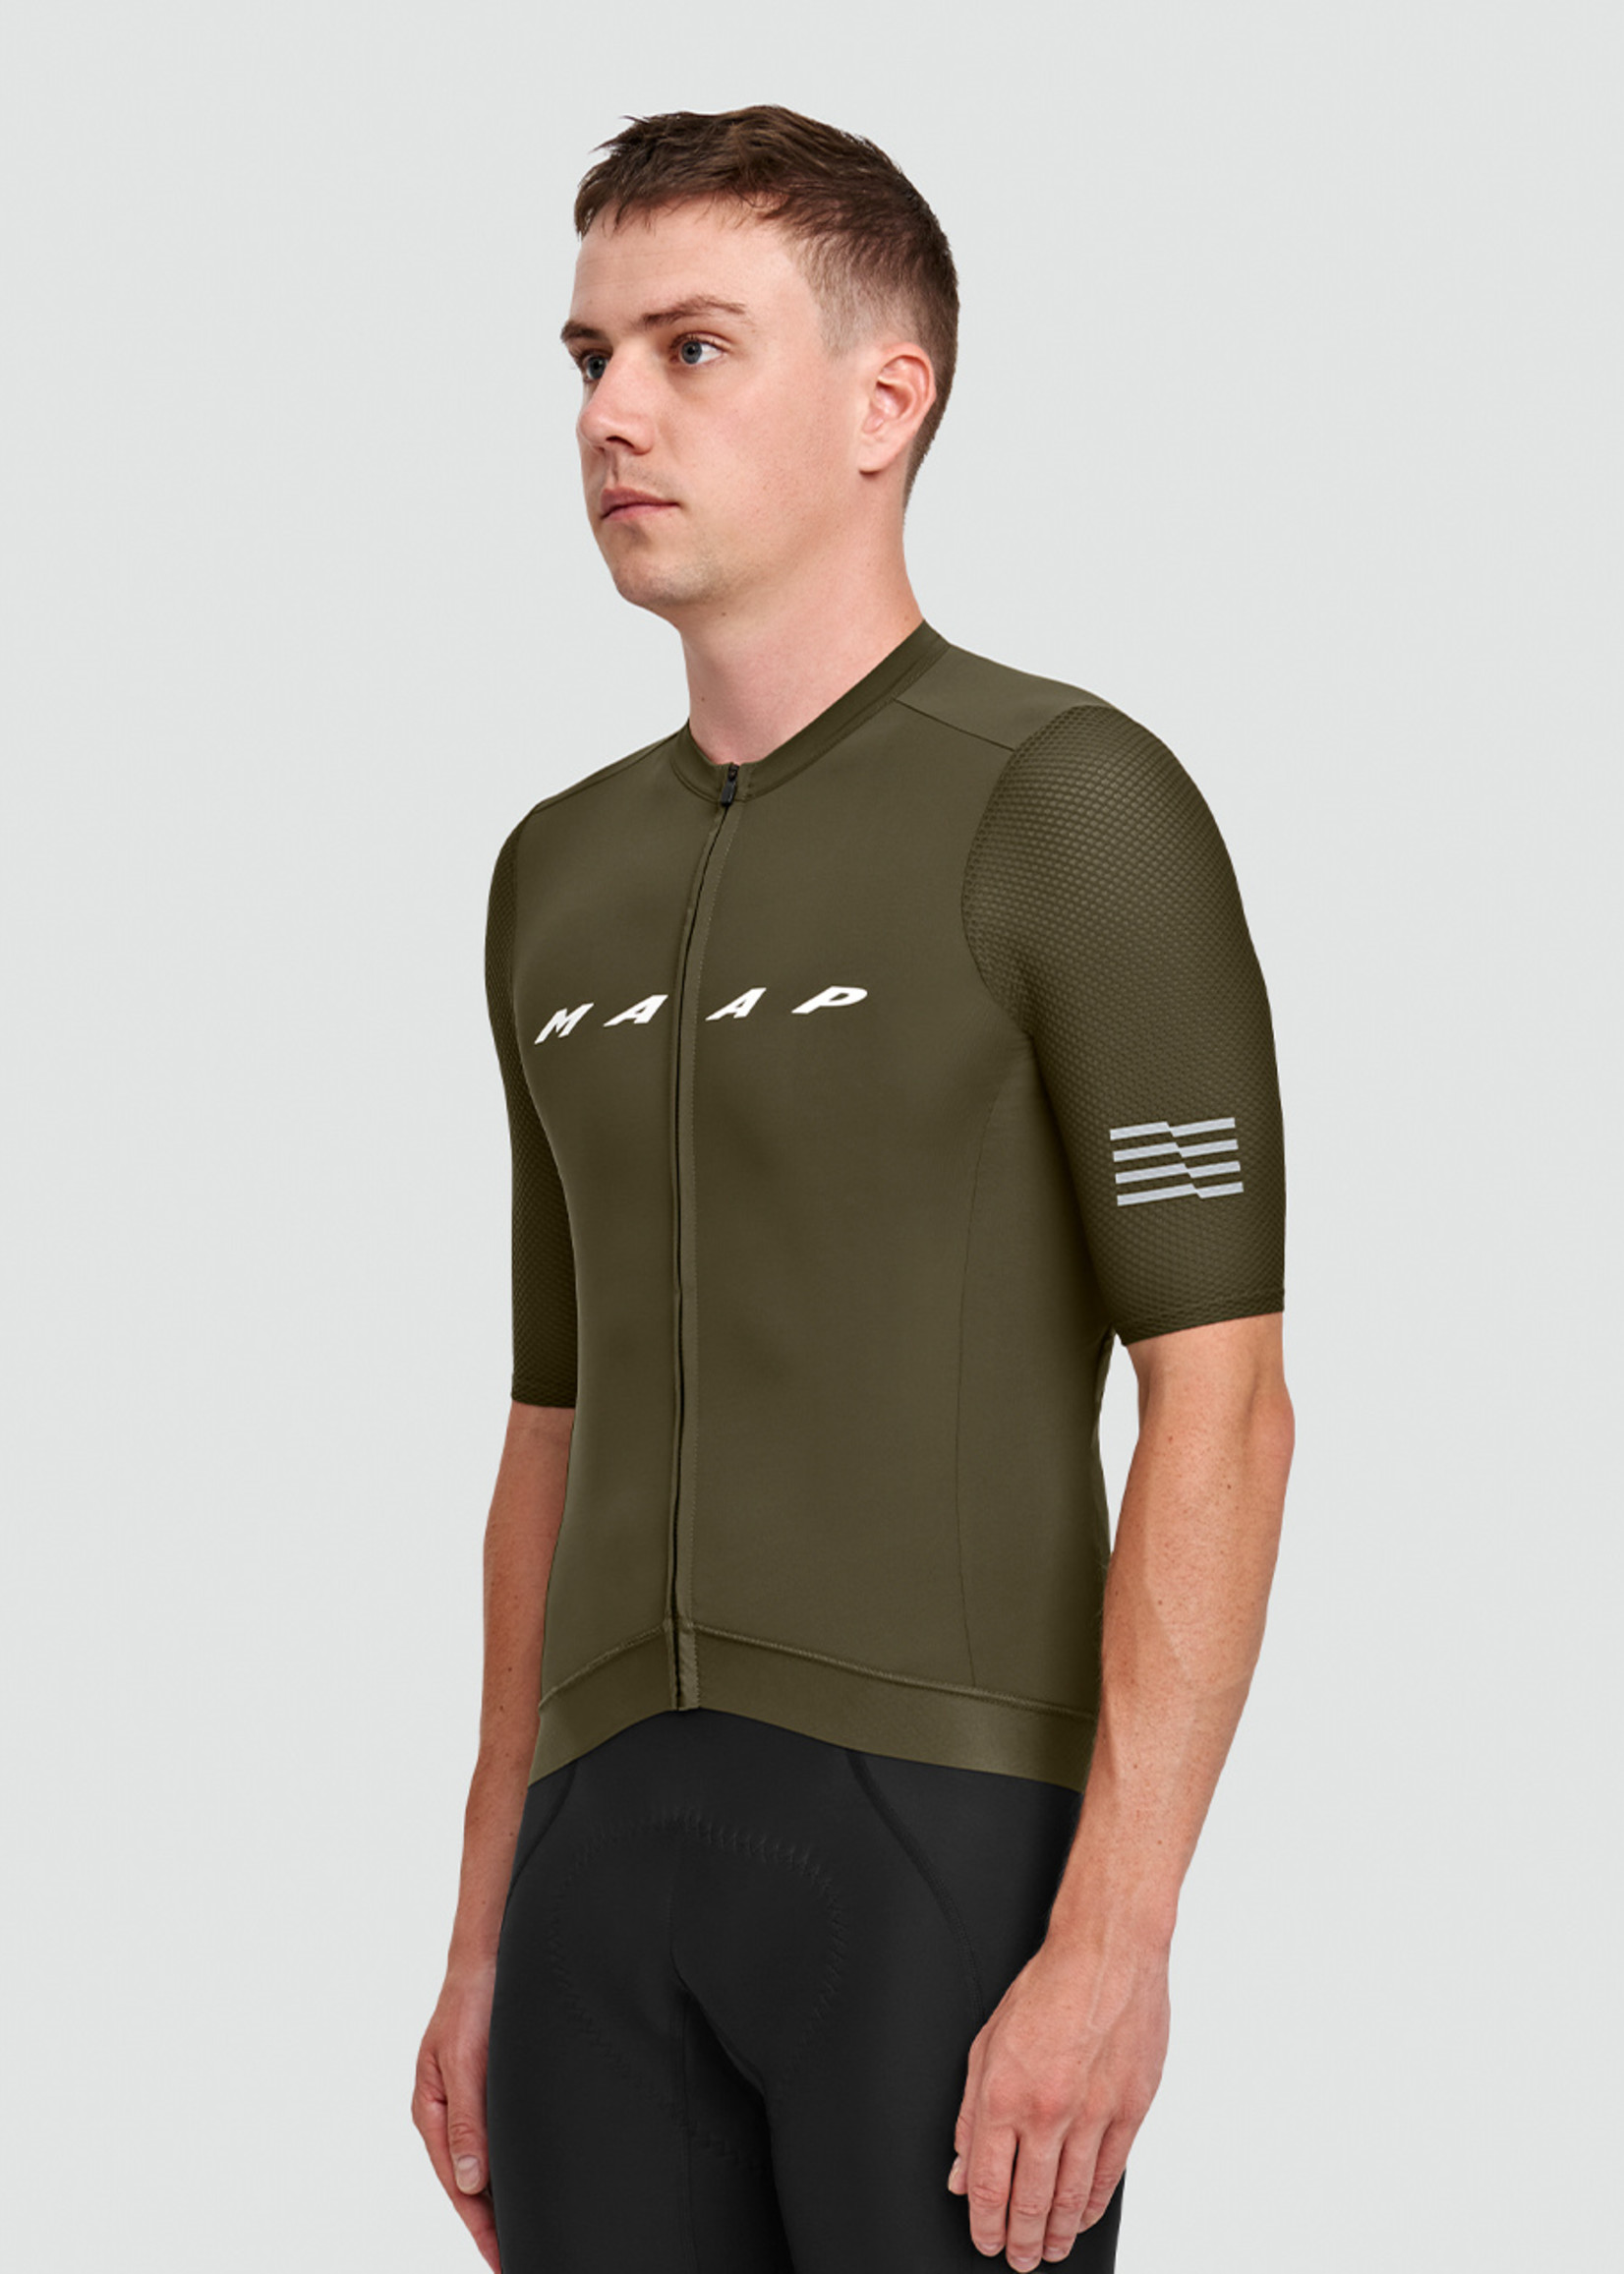 Maap Evade Pro Base Jersey - Olive